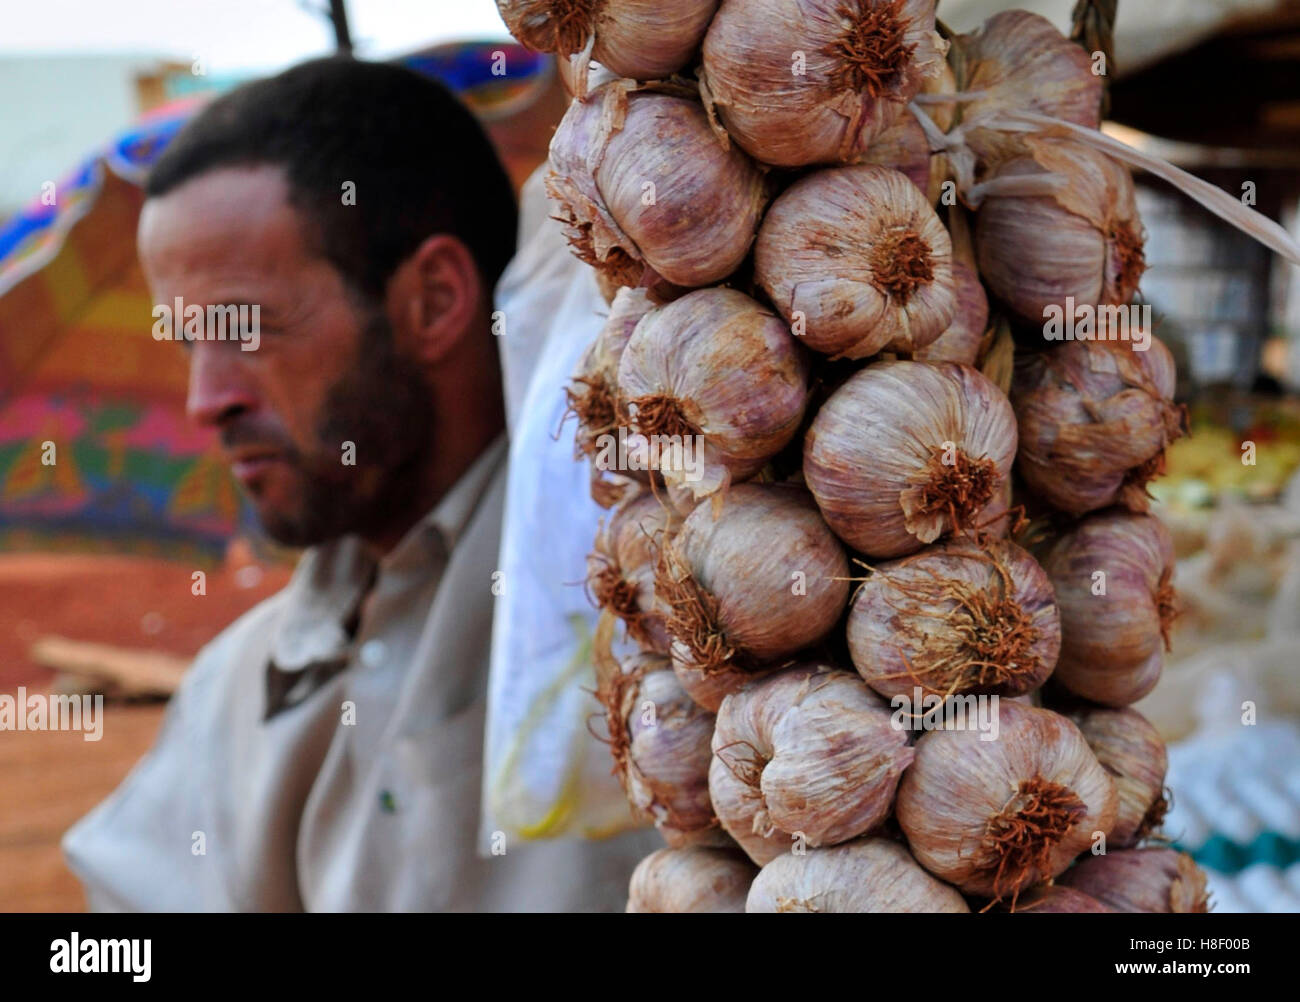 A Brazilian garlic vendor at a market in a small town in the state of Goias, Brazil. - Stock Image